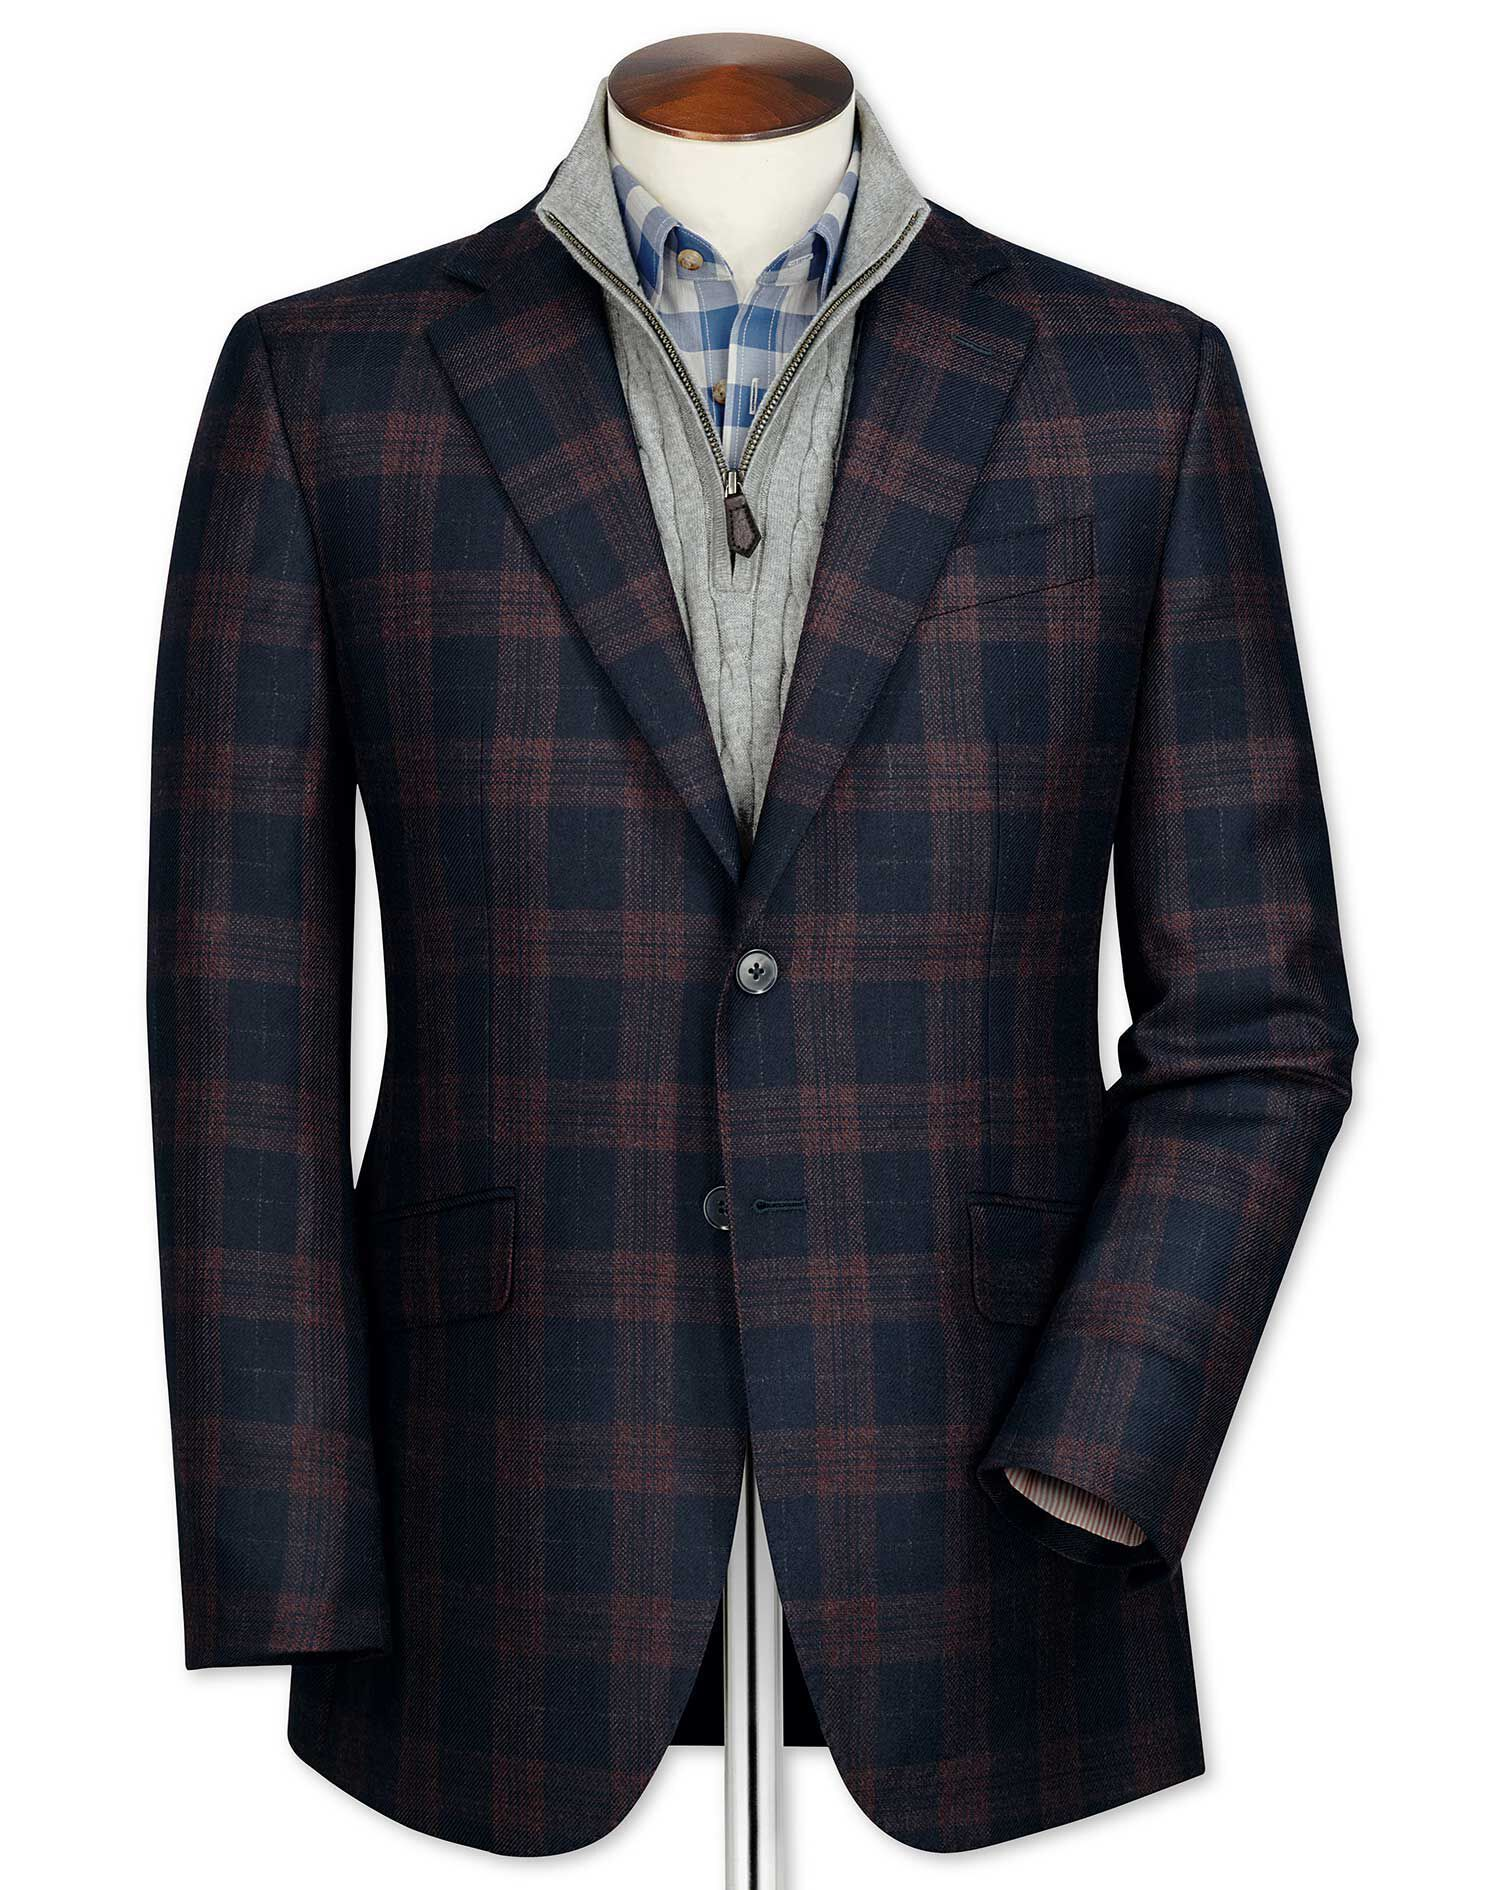 Slim Fit Navy Checkered Lambswool Wool Jacket Size 36 Short by Charles Tyrwhitt